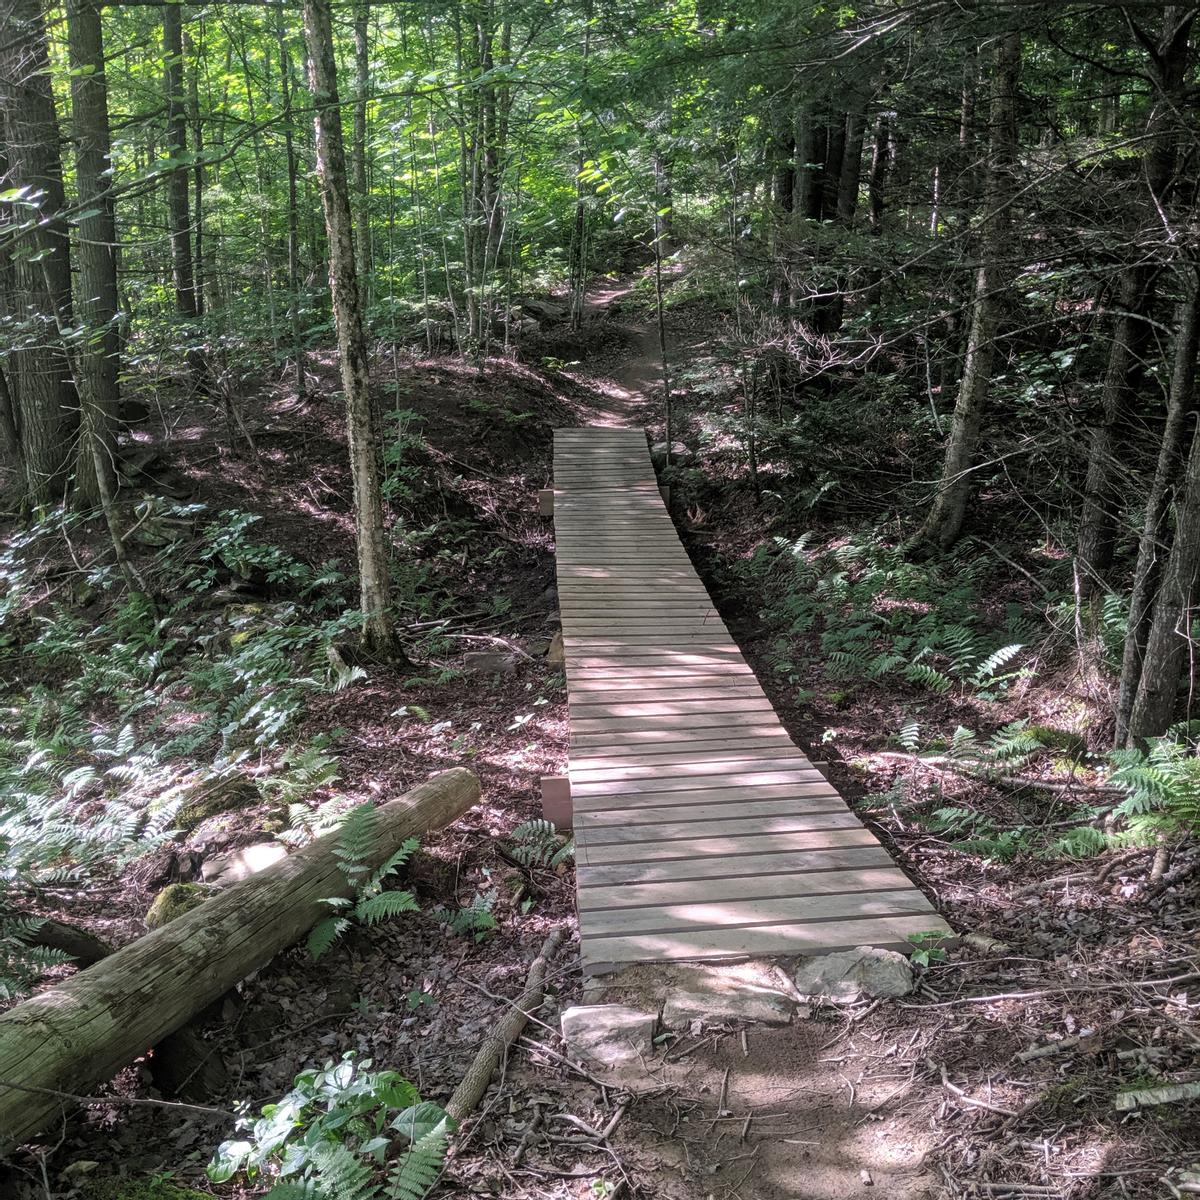 A 3 feet wide wooden boardwalk crossed over a low and wet section of trail